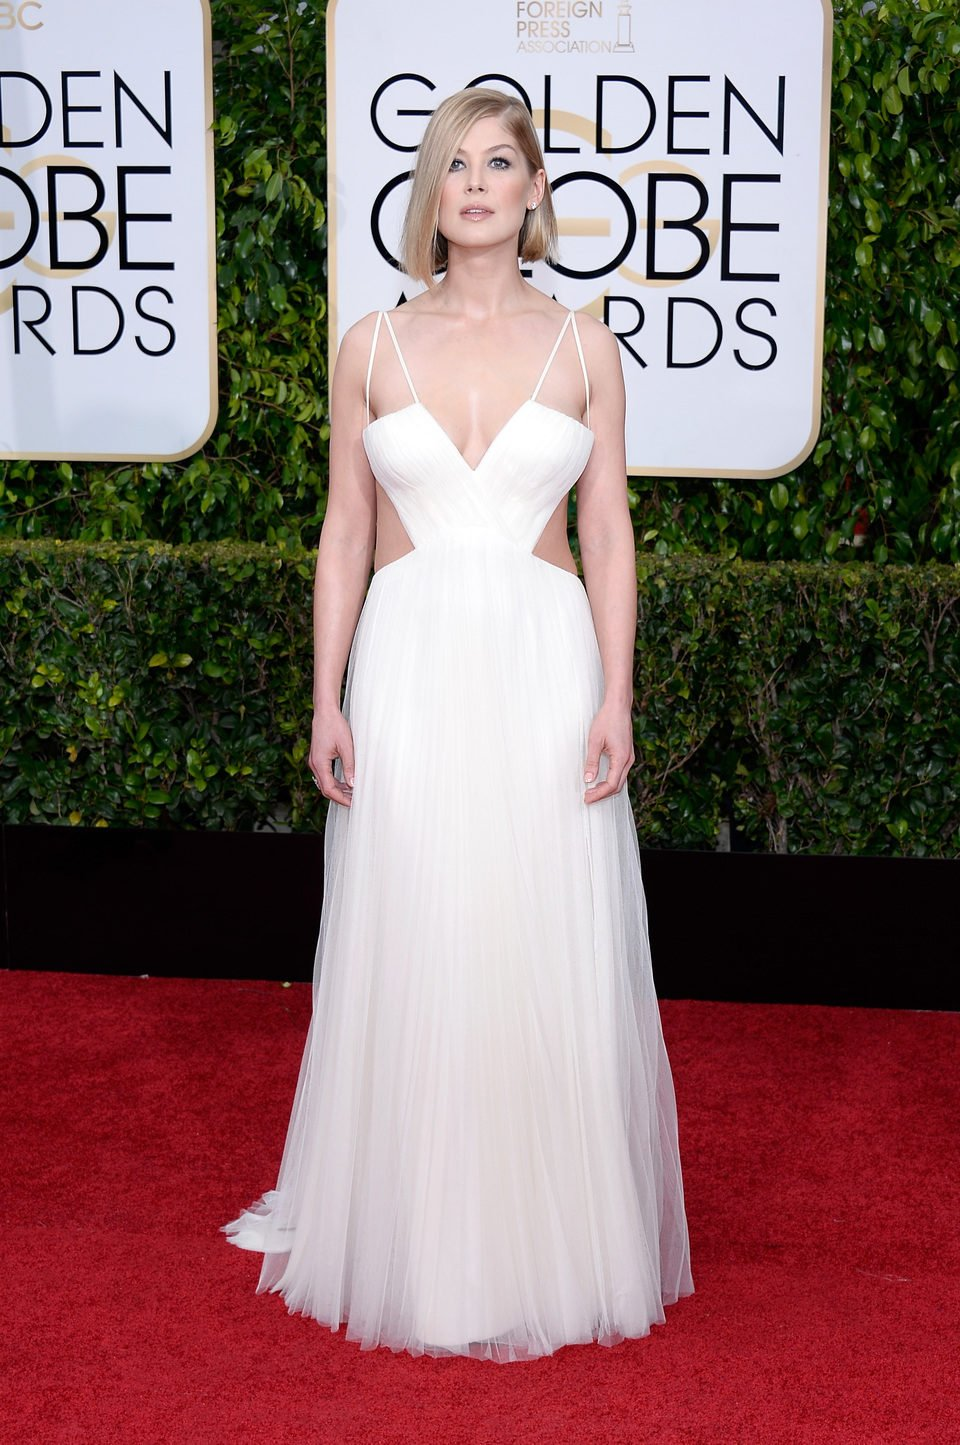 Rosamund Pike at the Golden Globes 2015 red carpet